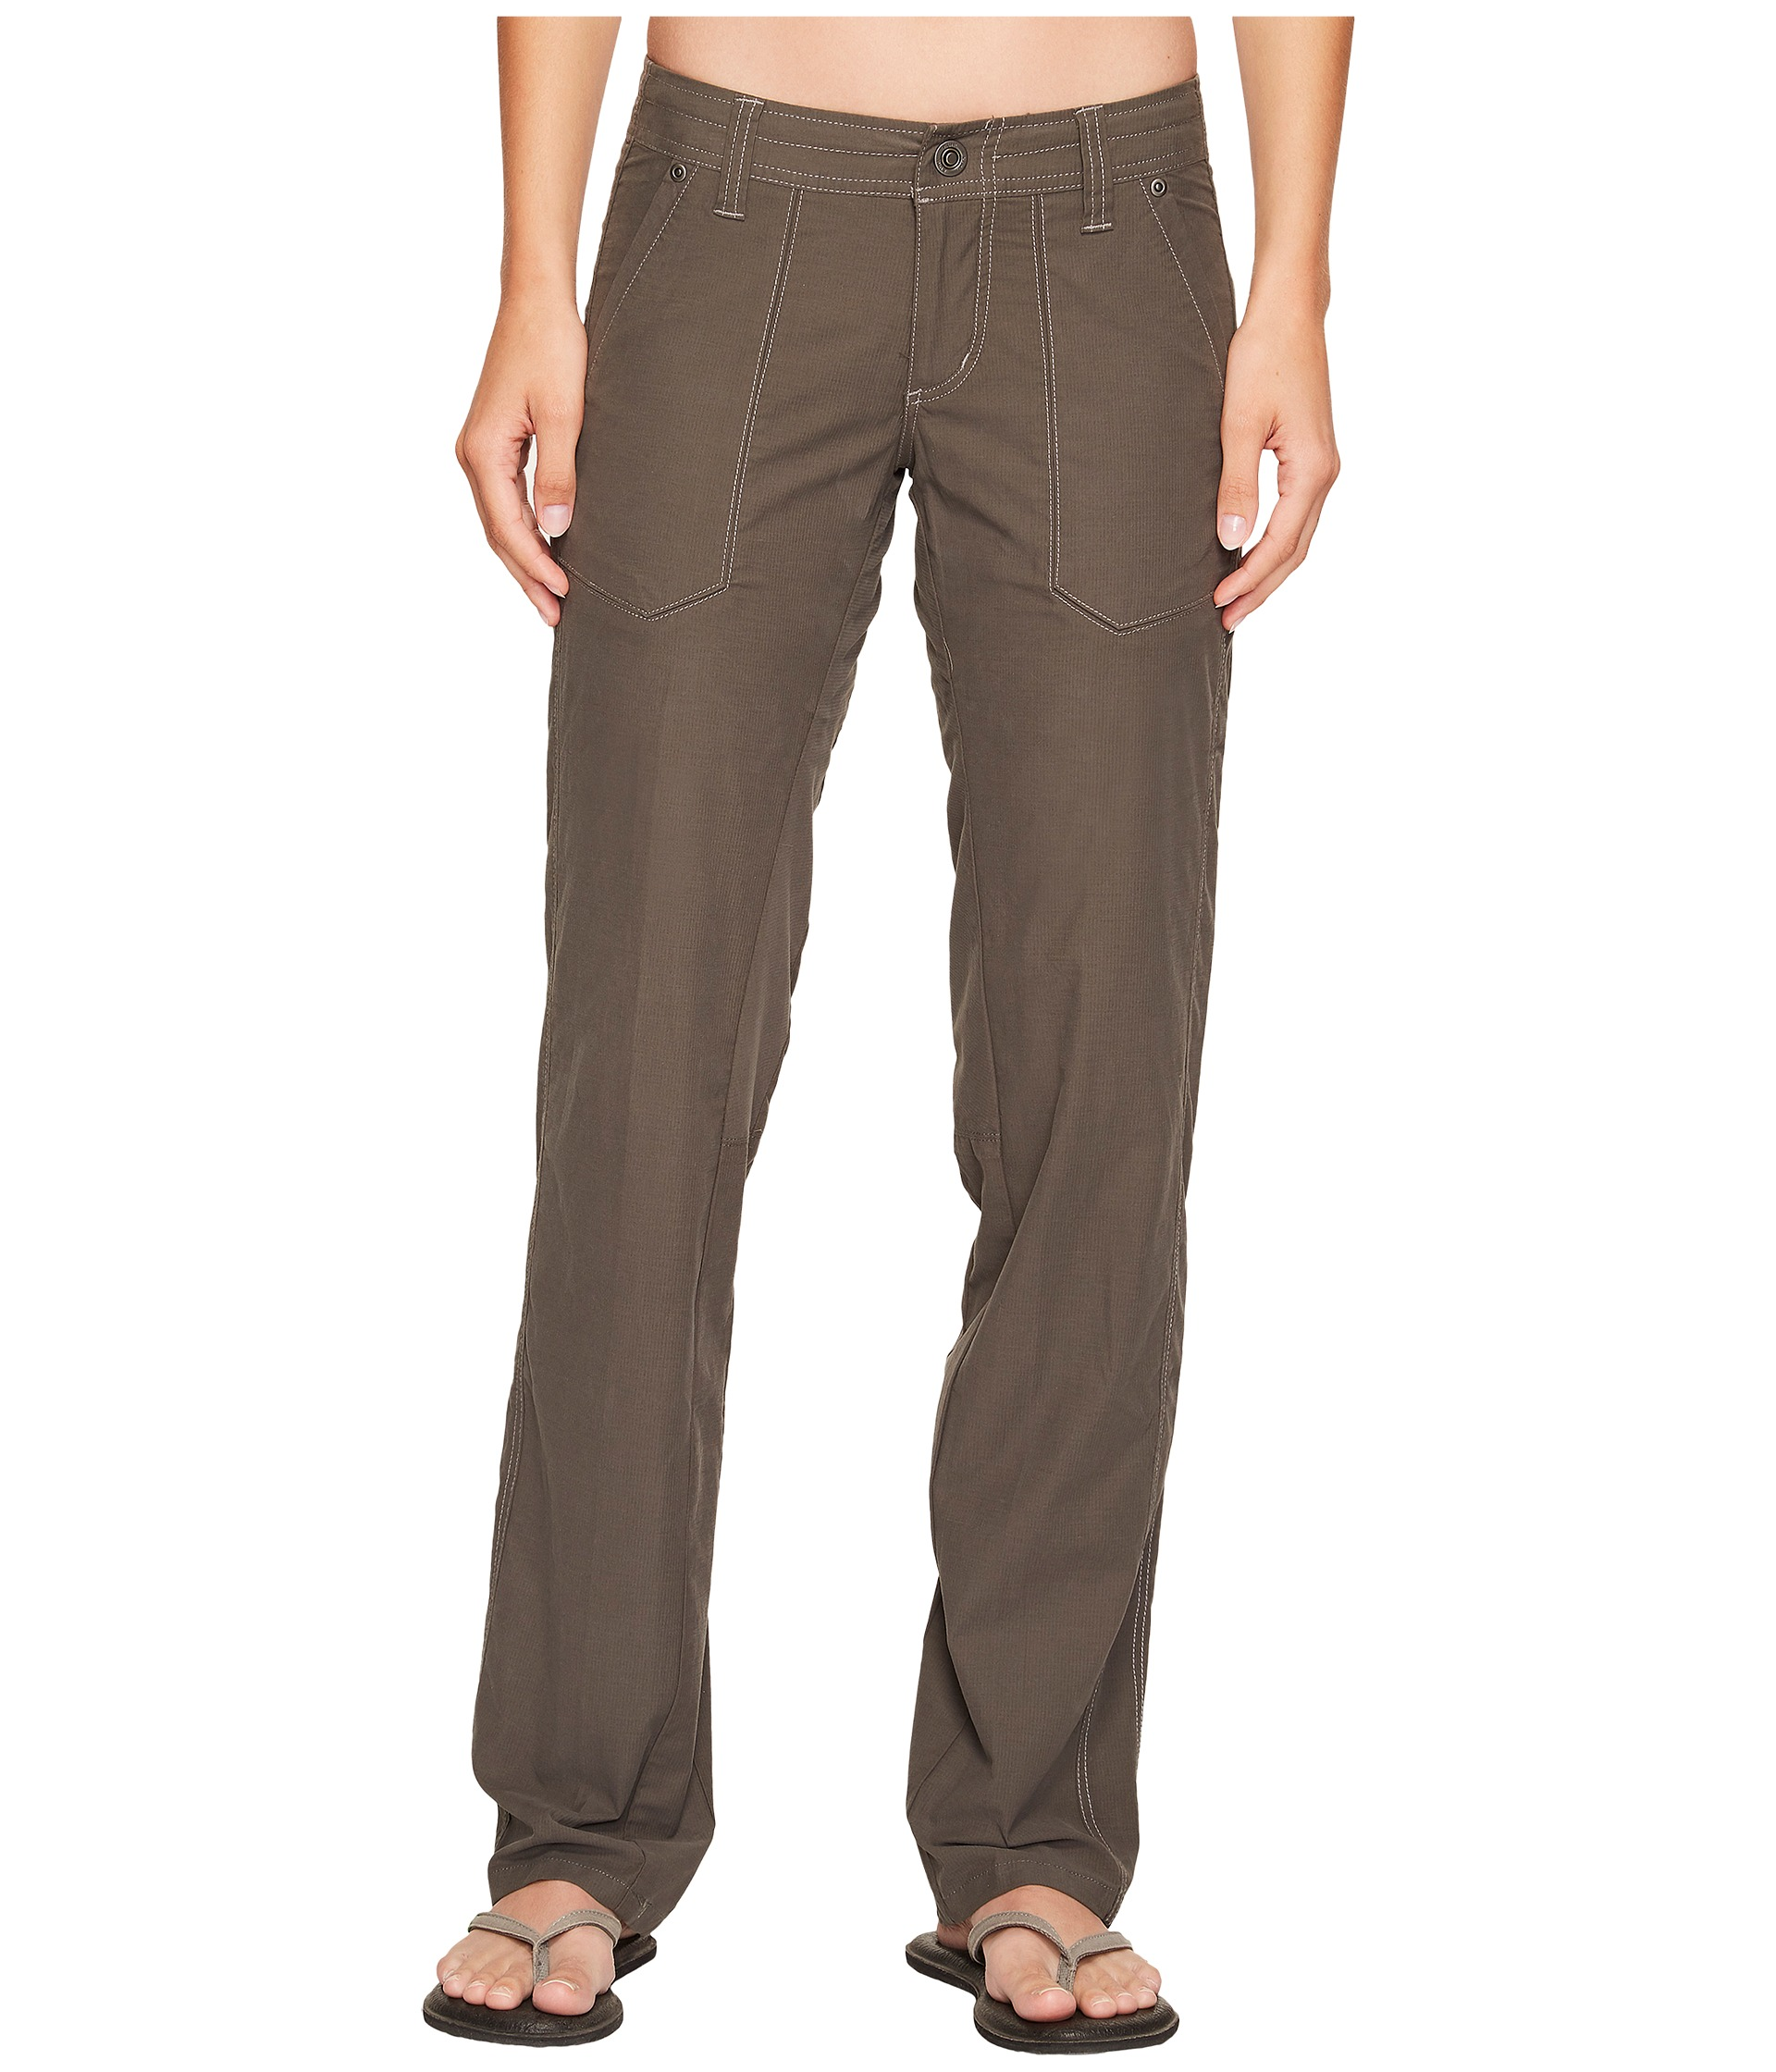 Cool Performance Hiking Pants Are Becoming Womens New Office Casual While The Gap Is Still Pushing Chinos And Khakis, Outdoor Apparel Brands Like Kuhl, Mountain Khakis, Prana And REI Have Found That Hiking Pants Are Becoming The New